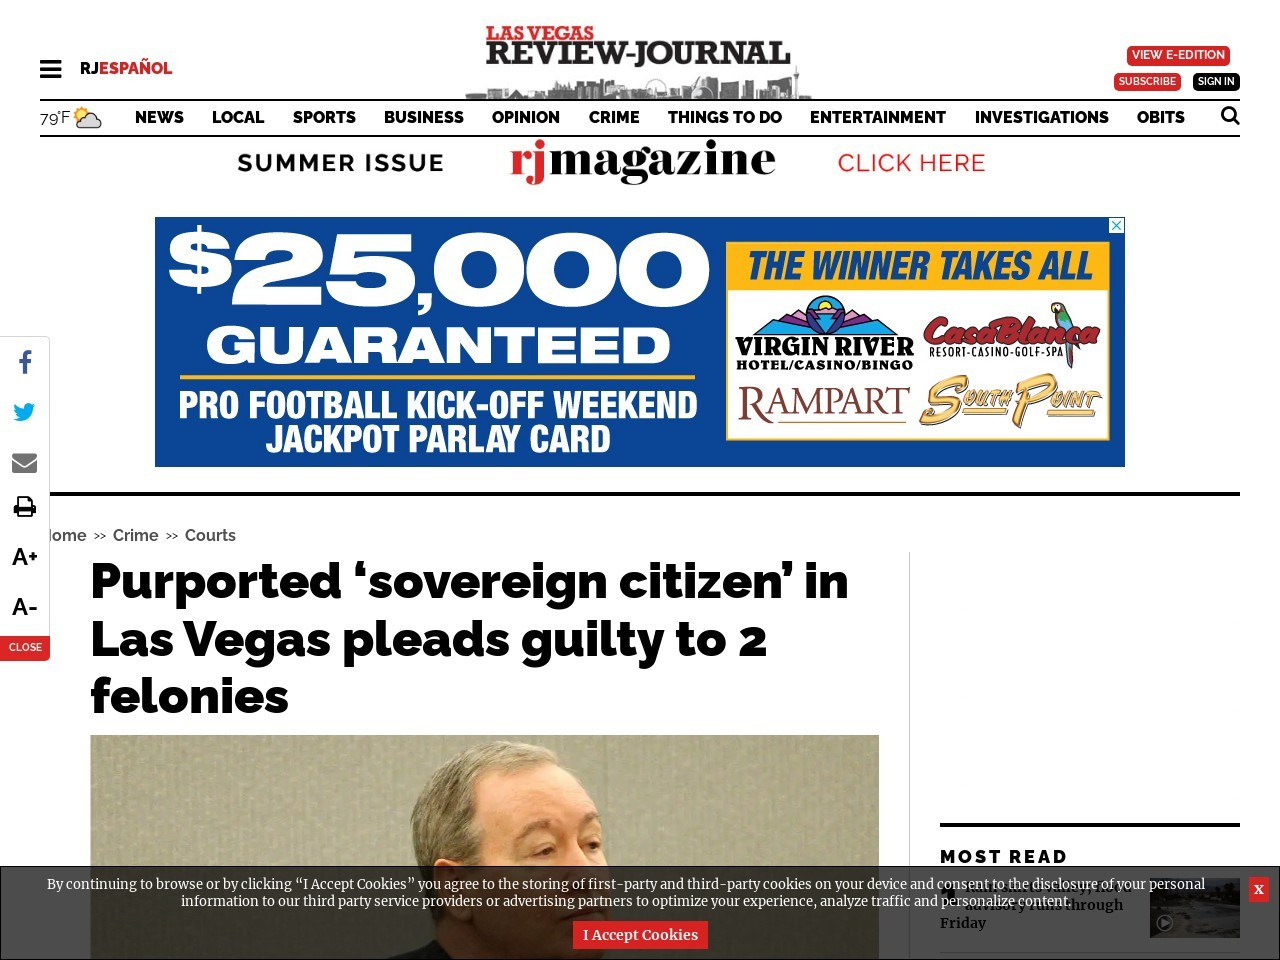 Purported 'sovereign citizen' in Las Vegas pleads guilty to 2 felonies